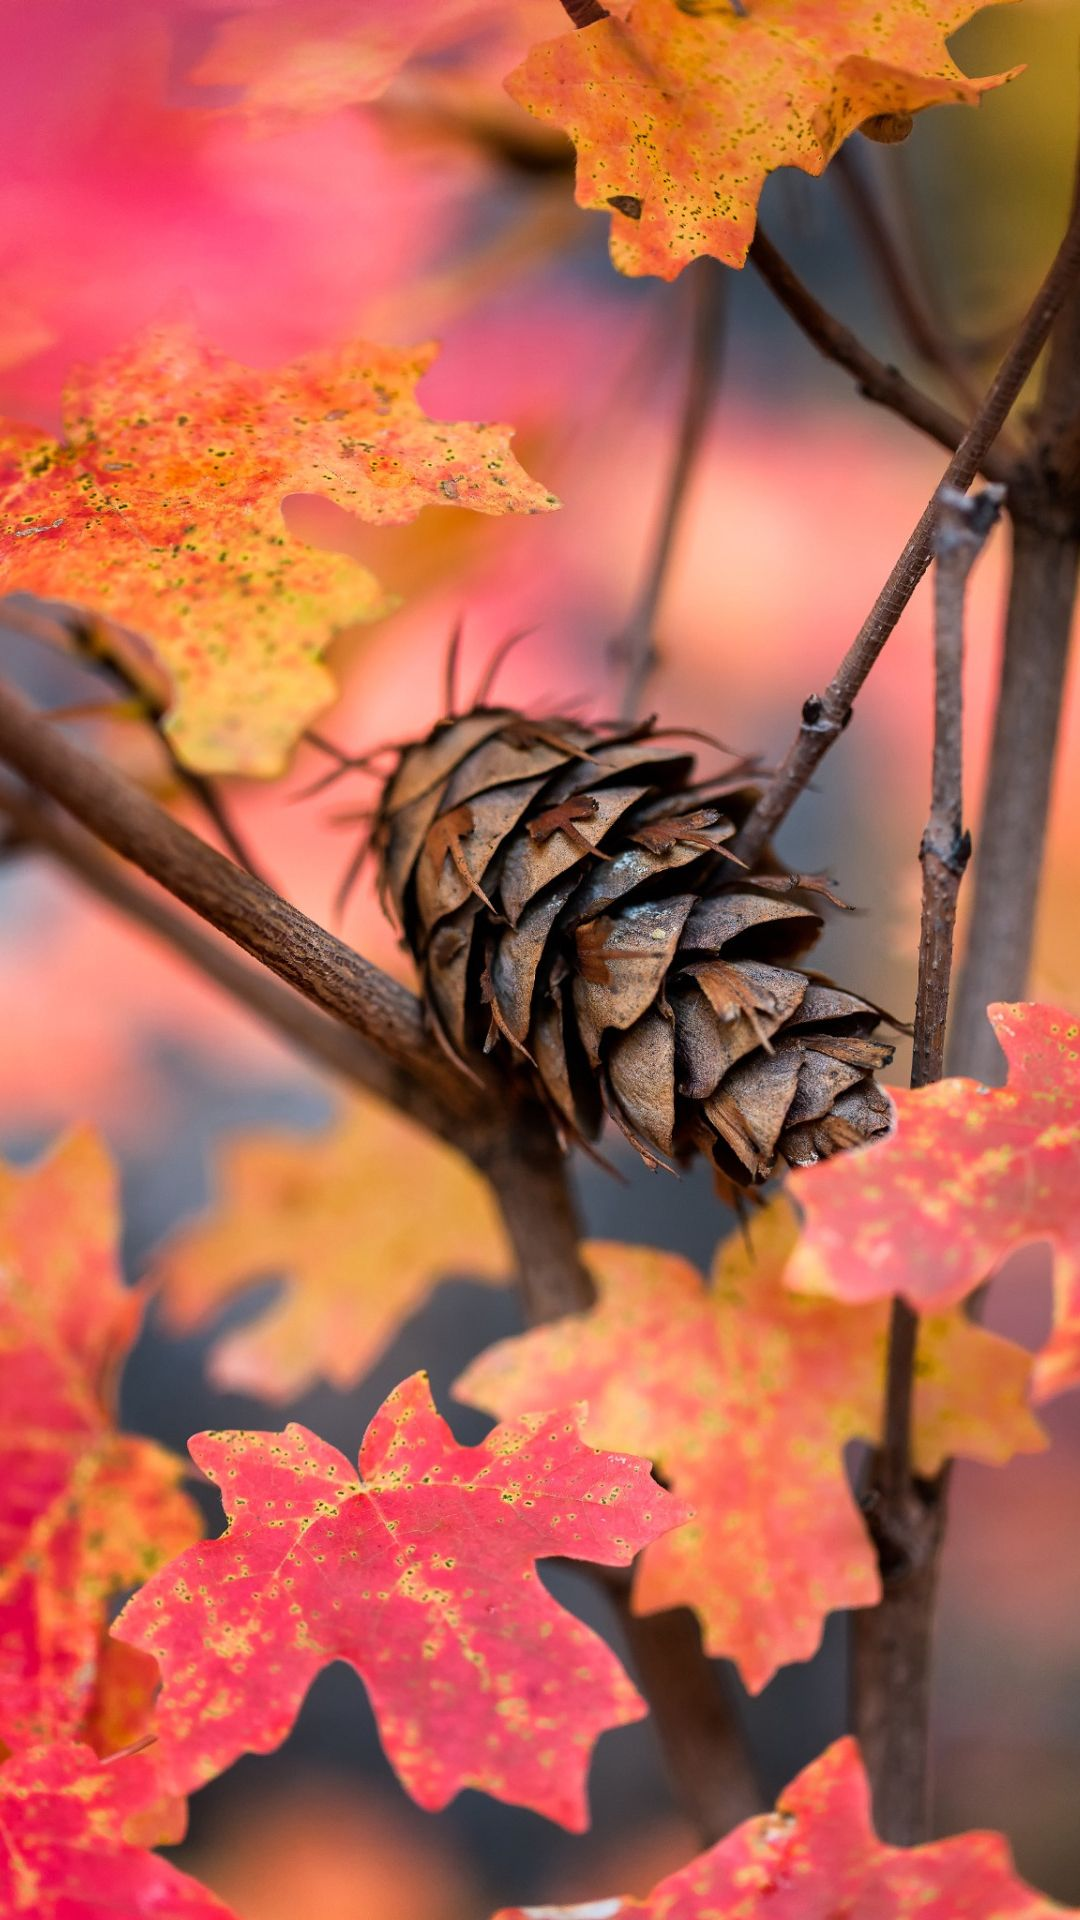 Hd wallpaper for j7 prime - Art Nature Wallpaper For Samsung Galaxy J7 Prime Background Pinecone And Autumn Leaves